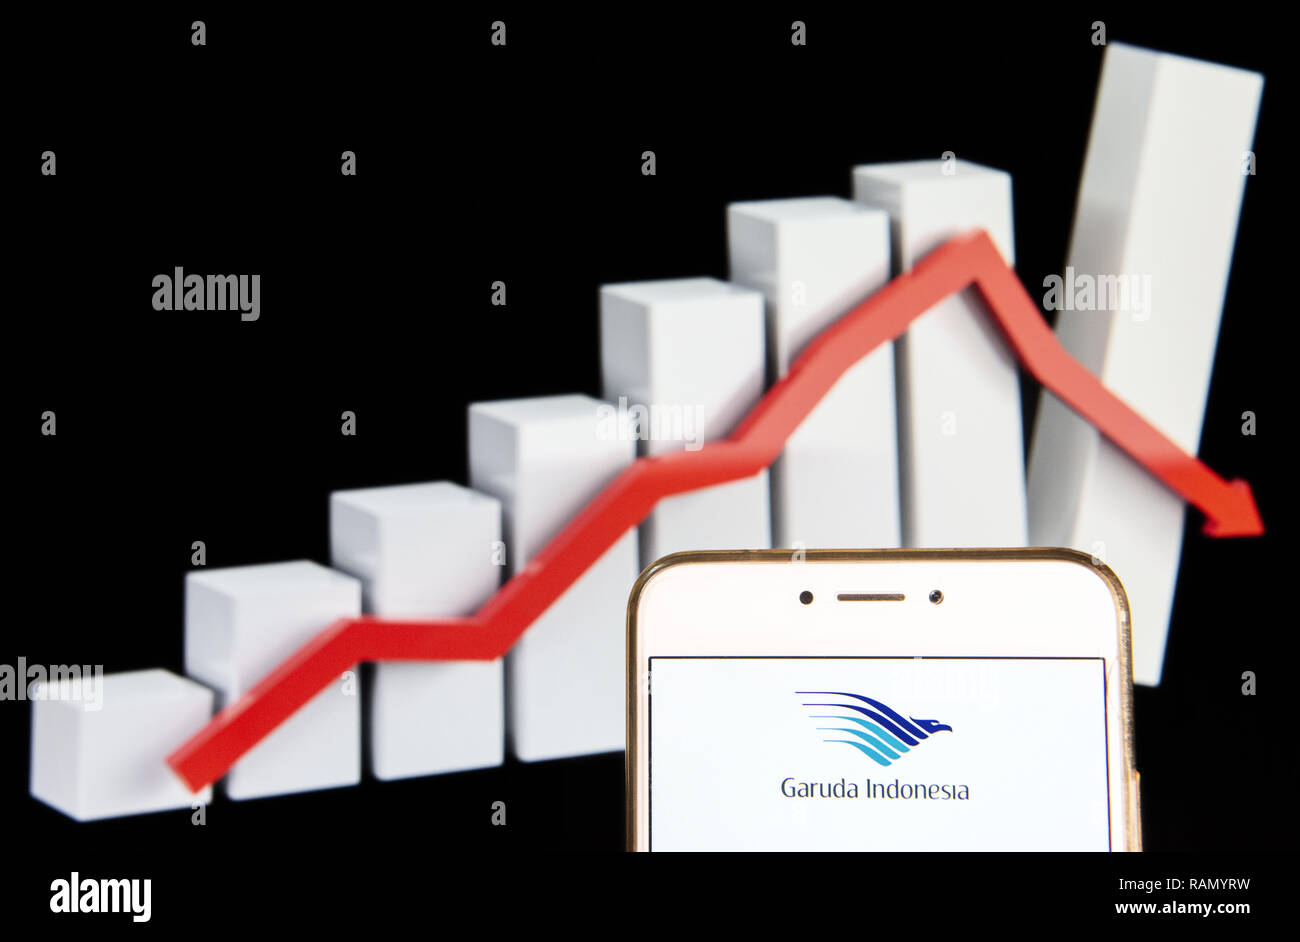 Garuda Airline Stock Photos Amp Garuda Airline Stock Images